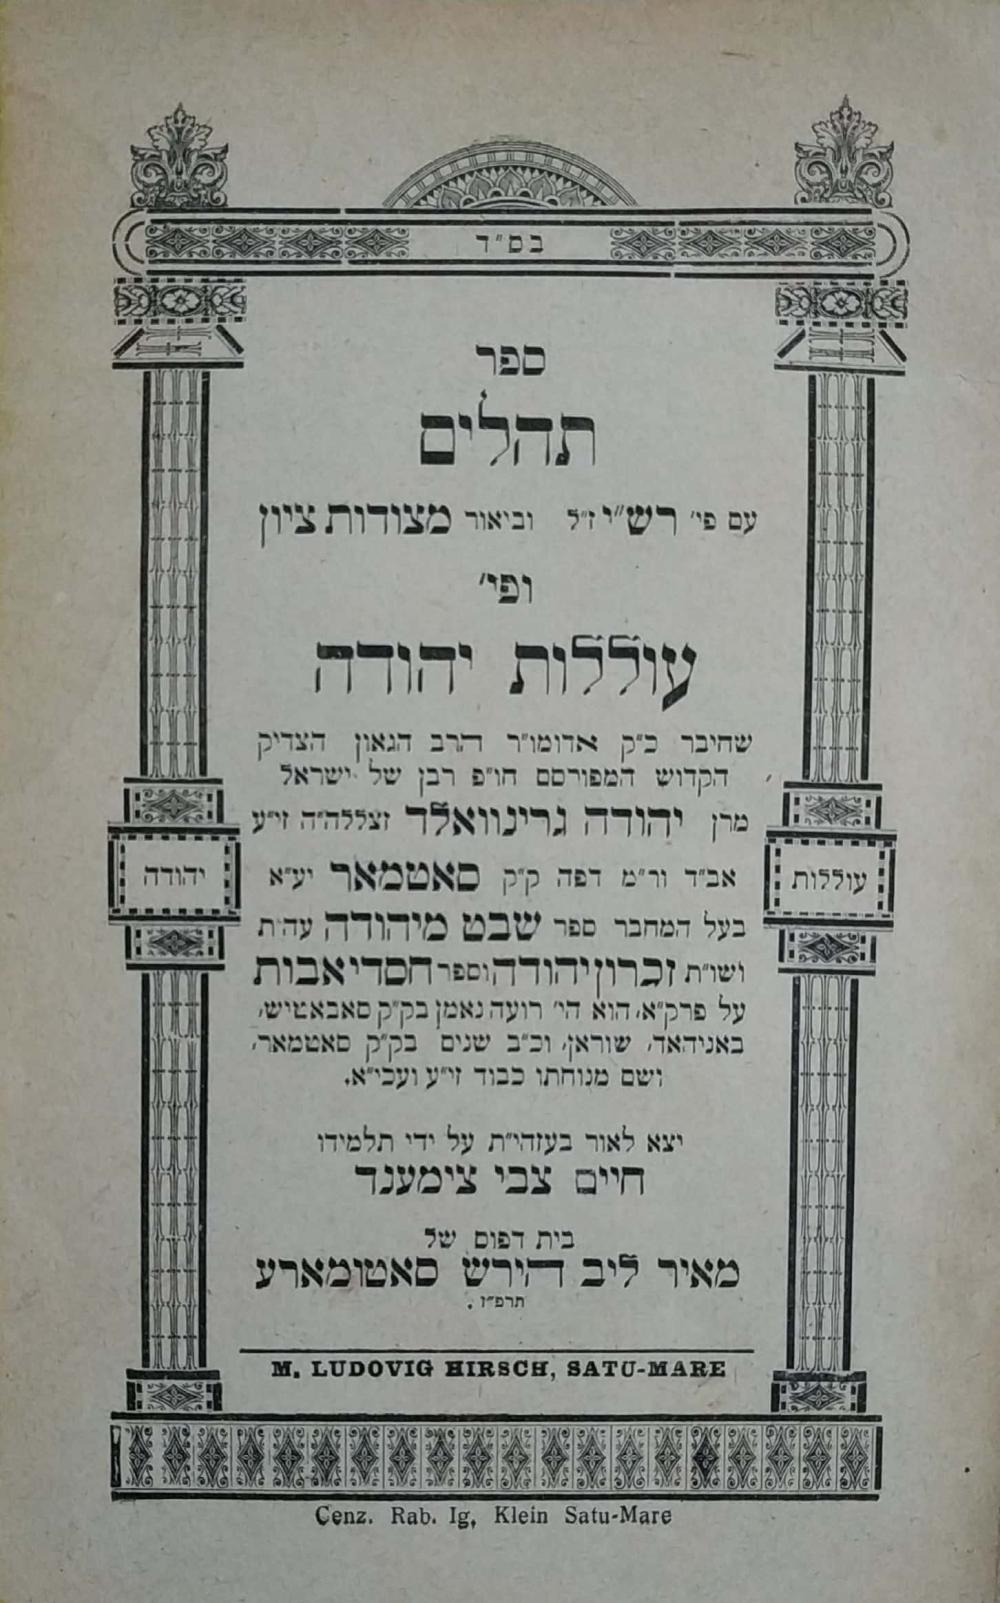 Tehillim with commentary on Olelot Yehuda, by the Satmer Reb